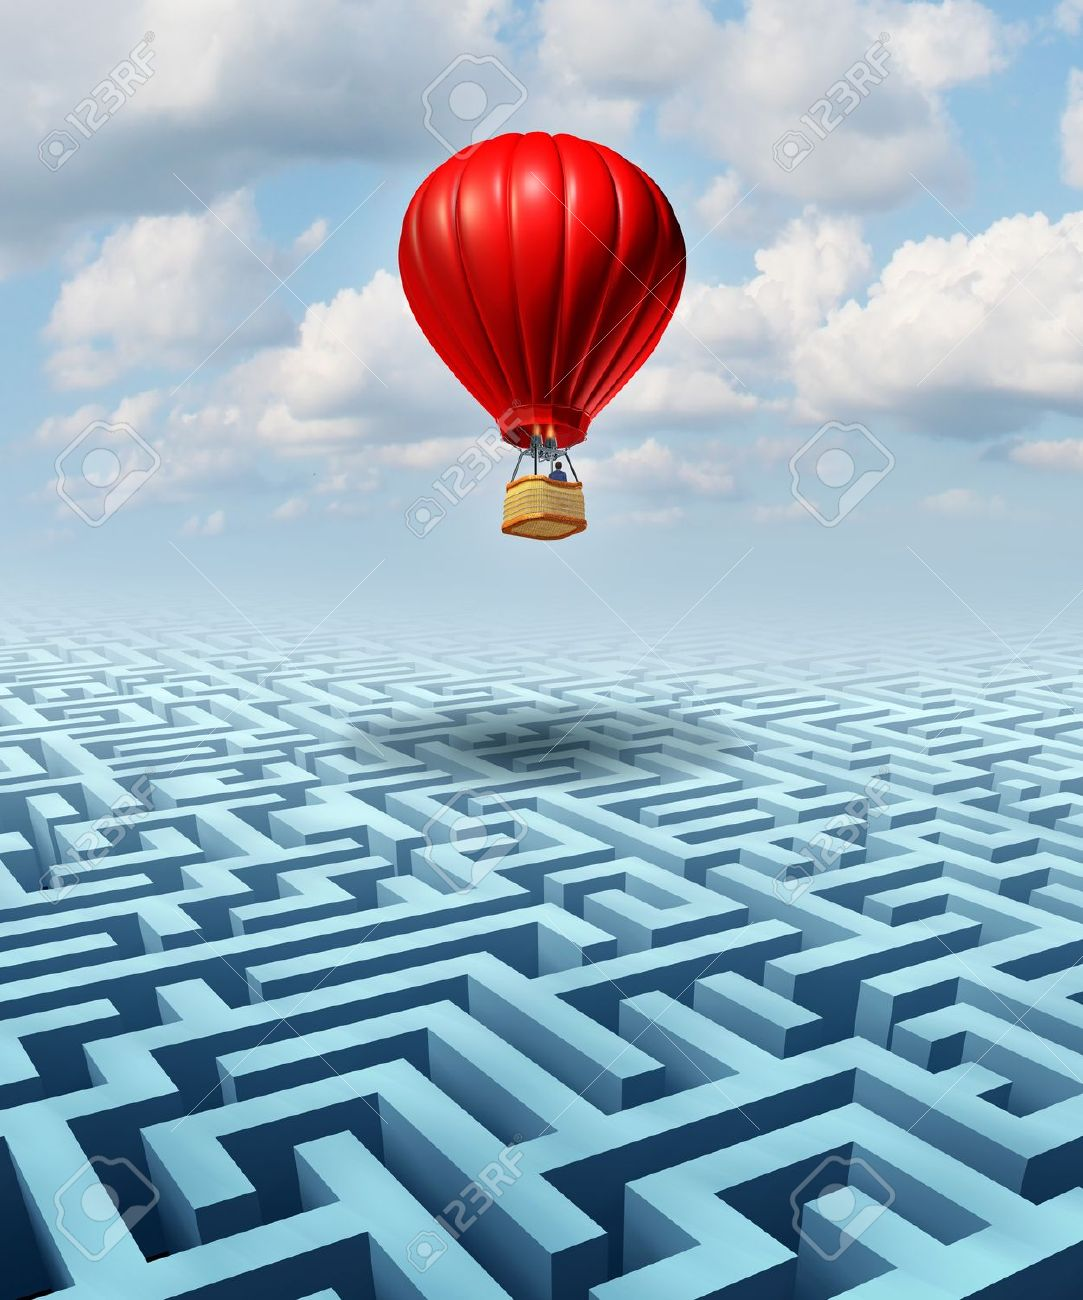 Rise above the challenges of business and life concept with a red hot air balloon with a businessman inside flying over a confusing maze or labyrinth puzzle as a metaphor for conquering adversity success with leadership Stock Photo - 21100474